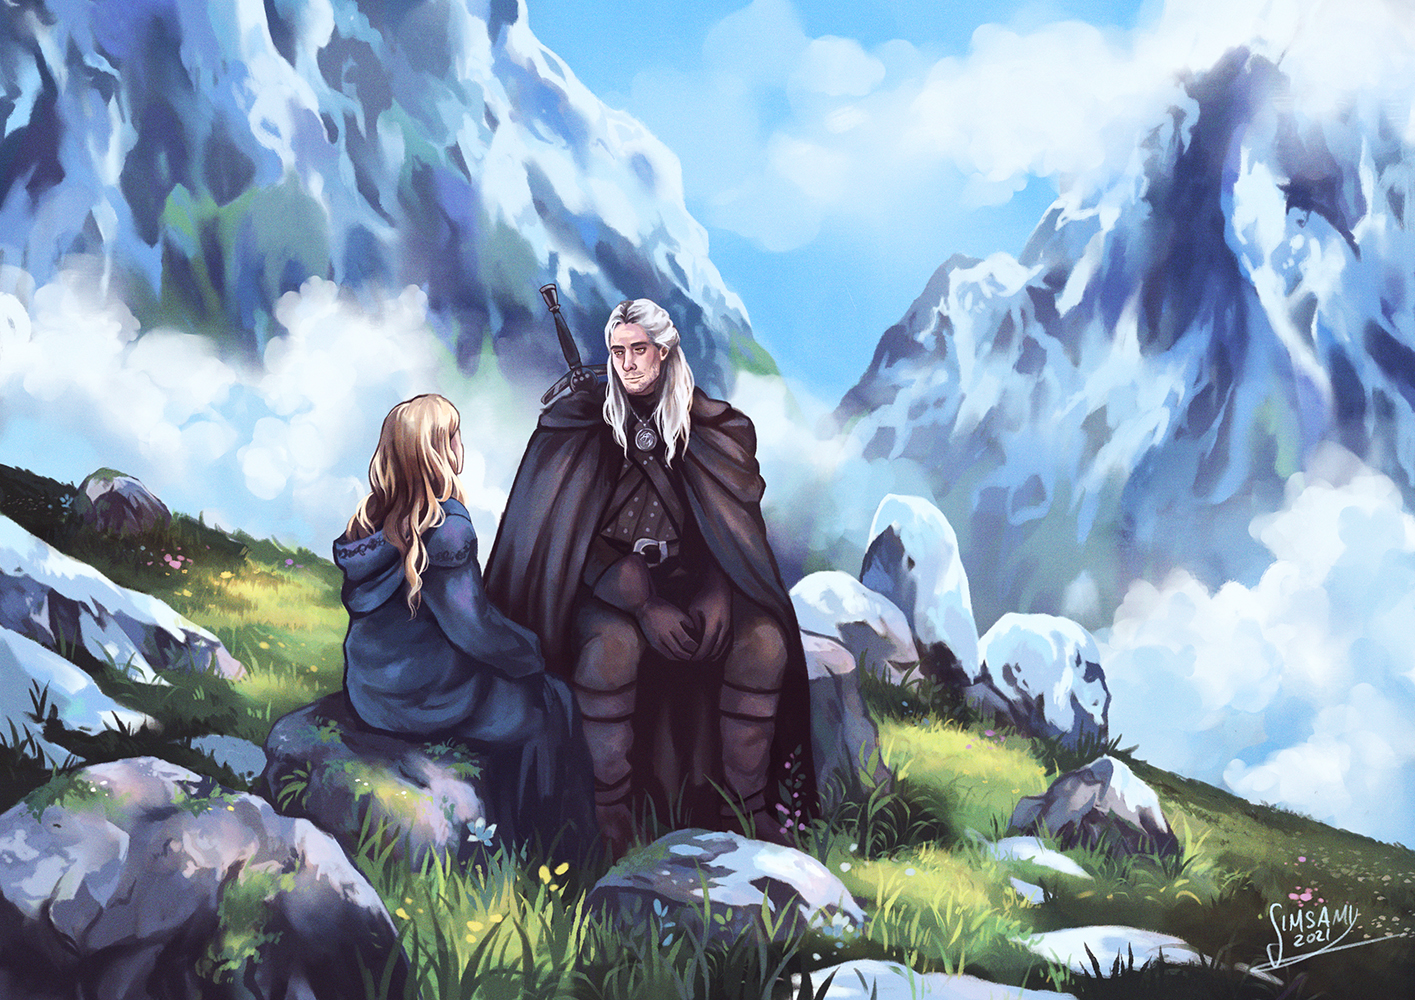 On the way to Kaer Morhen